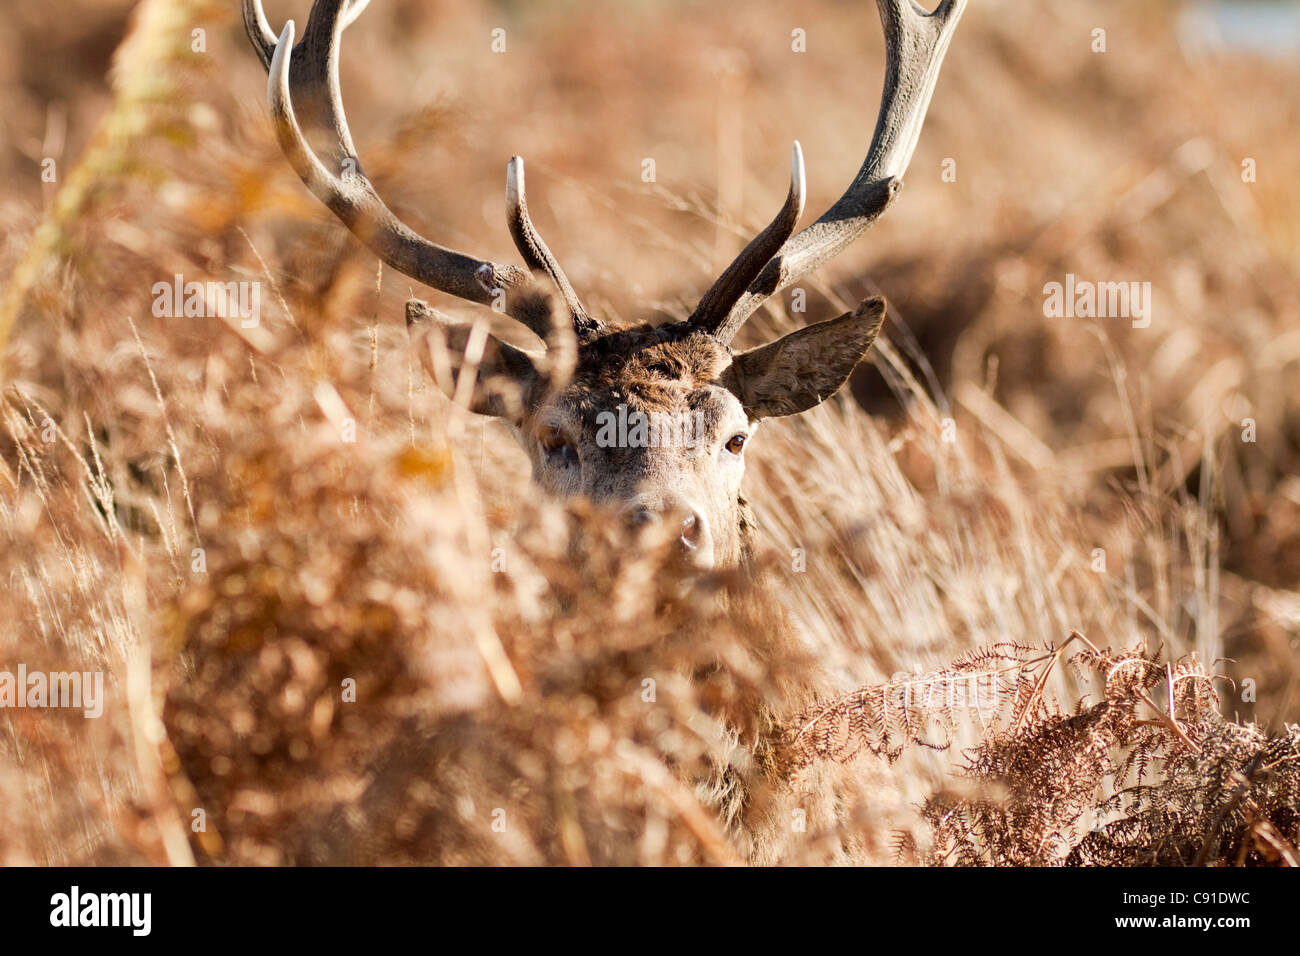 Red deer stag, Curvus elaphus, Richmond park, autumn/fall, Surrey, England, UK - Stock Image